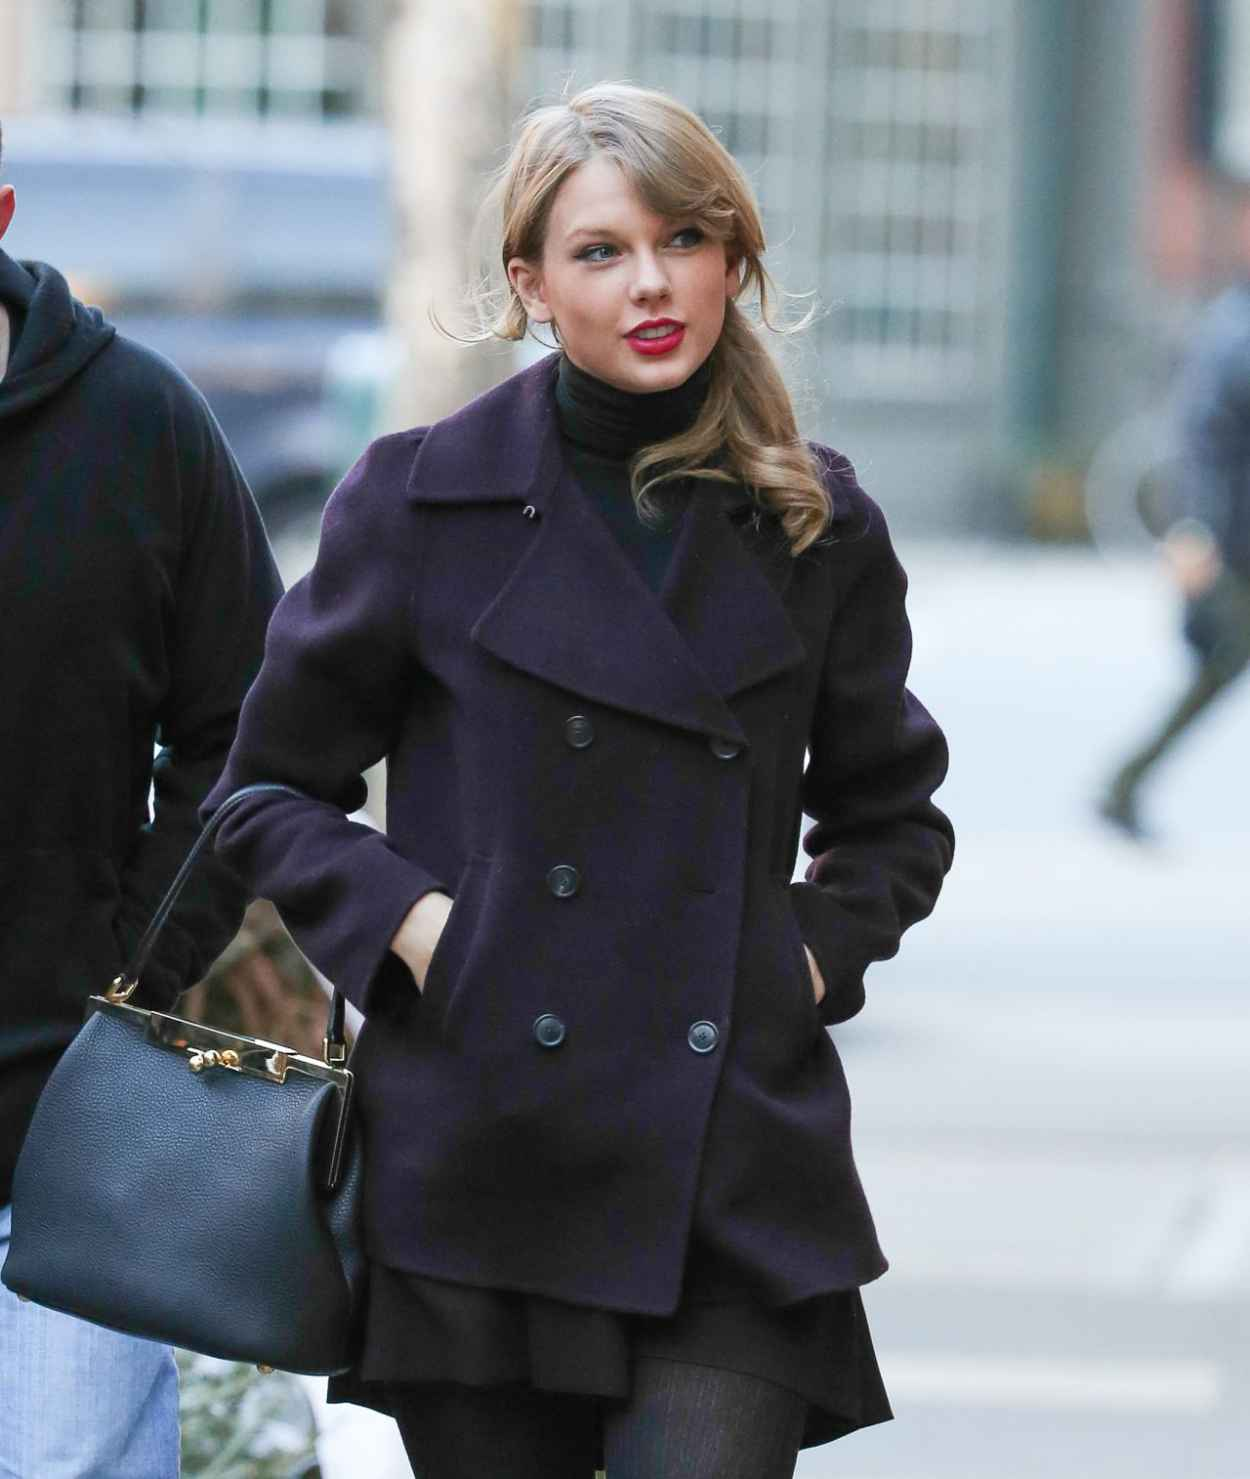 Taylor Swift Street Style - Looking for Appartment in New York, January 2015-1